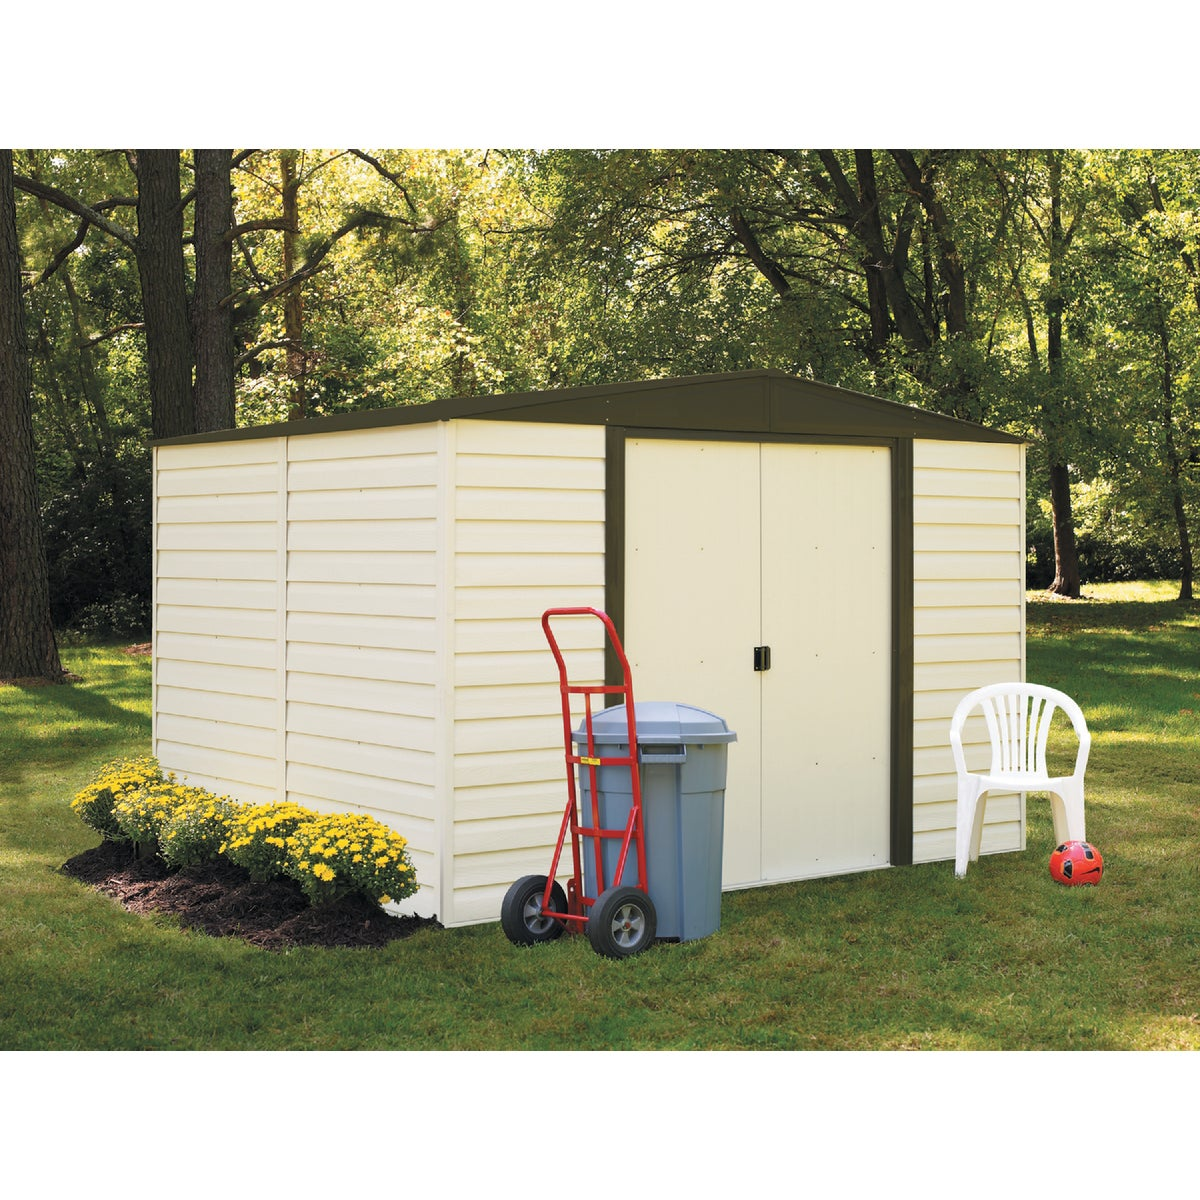 10X8 DALLAS VINYL SHED - VD108-A by Arrow Shed Llc